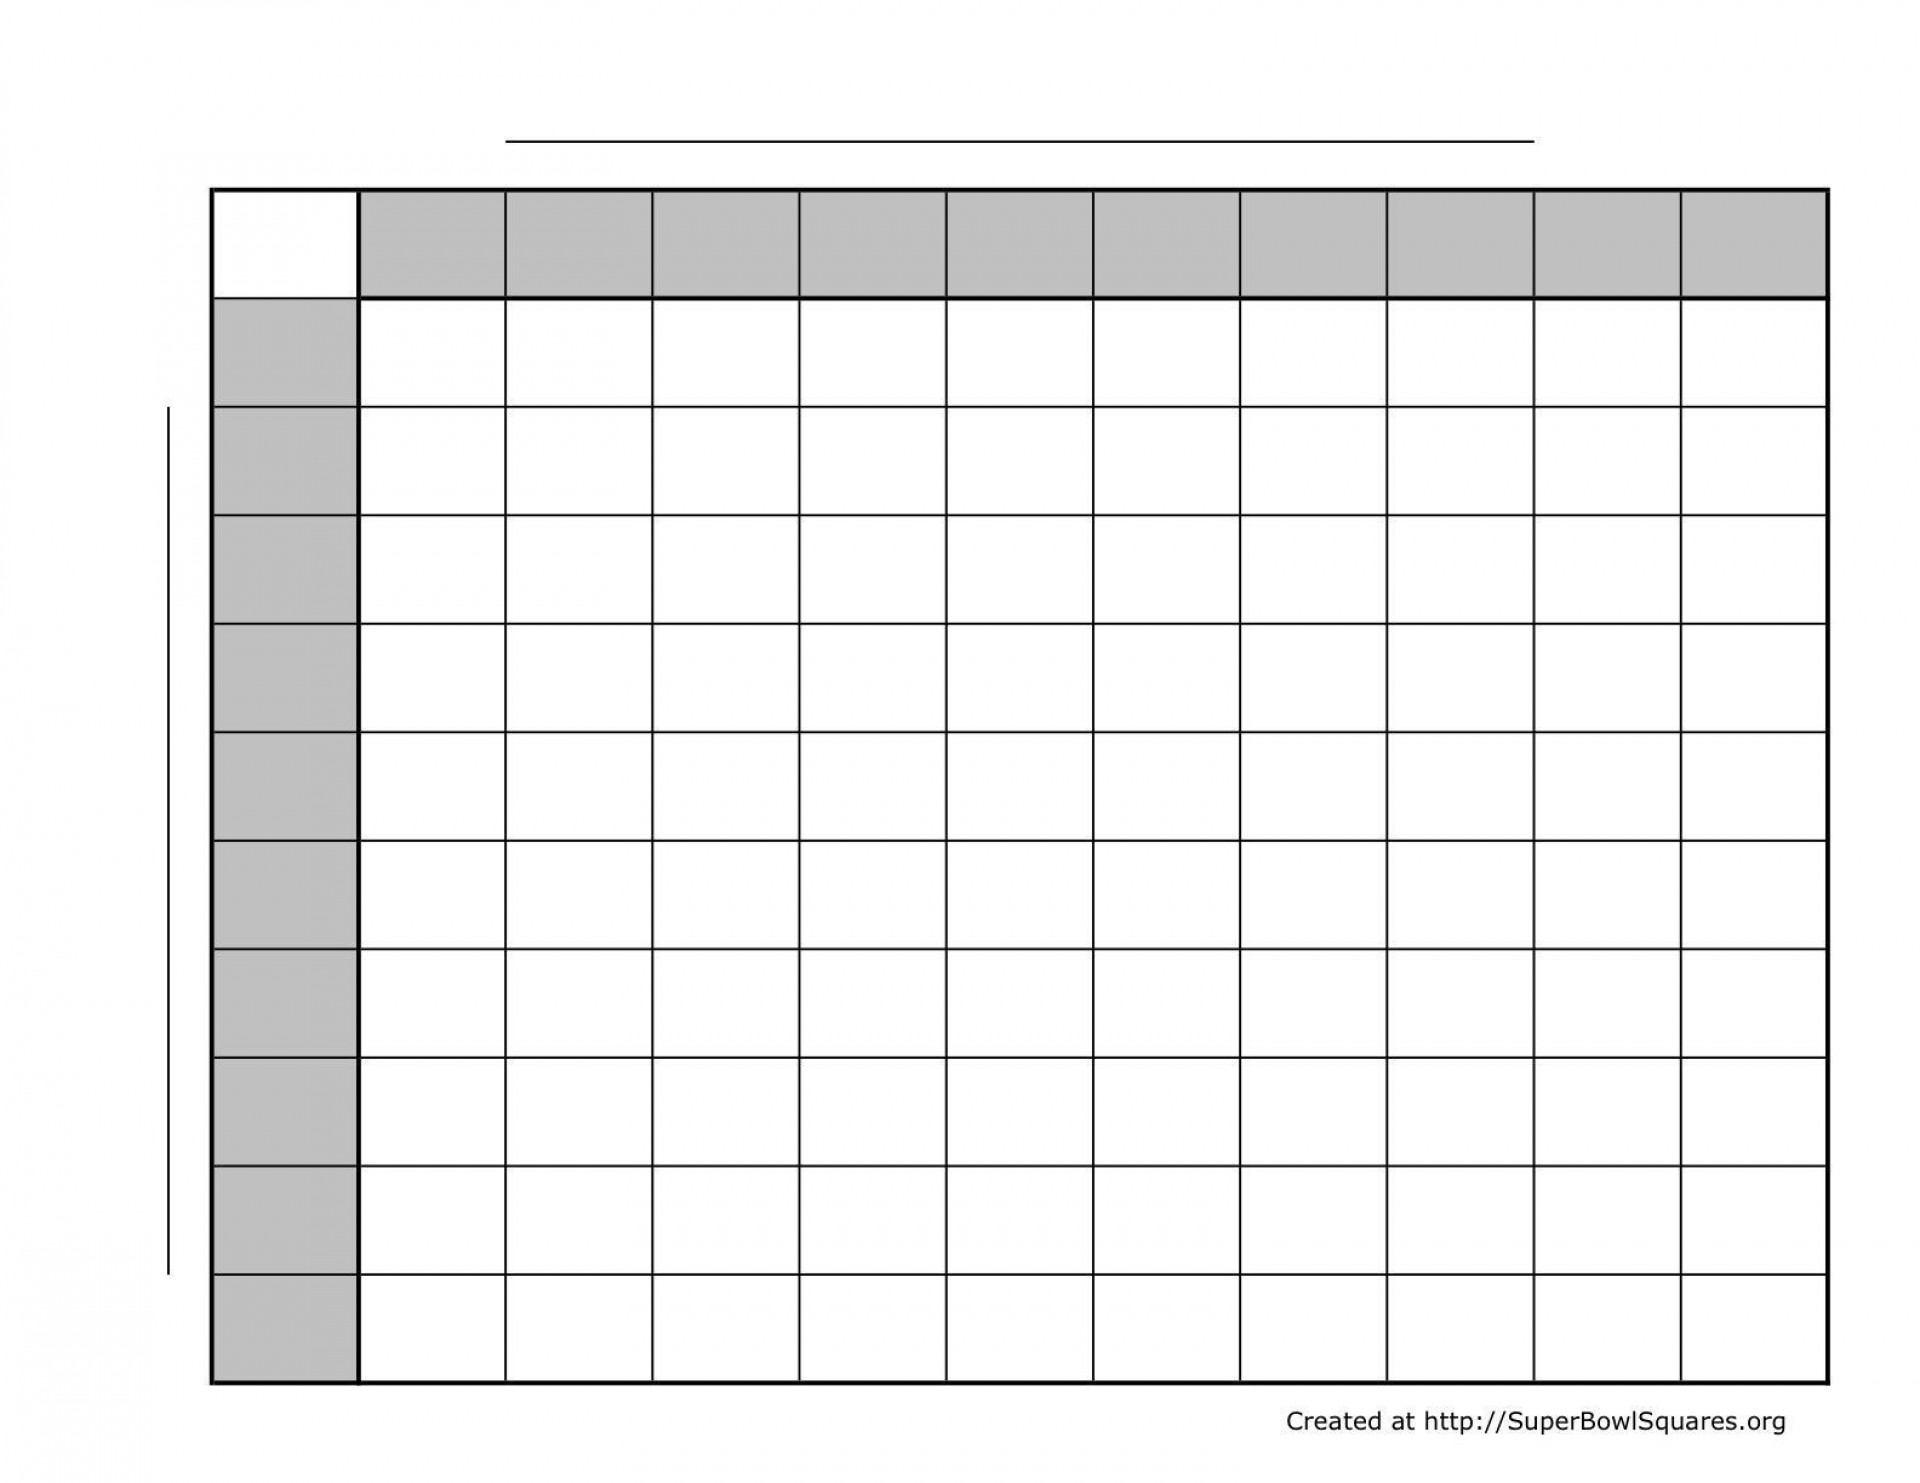 004 Magnificent Football Square Template Excel Sample  Printable Pool1920